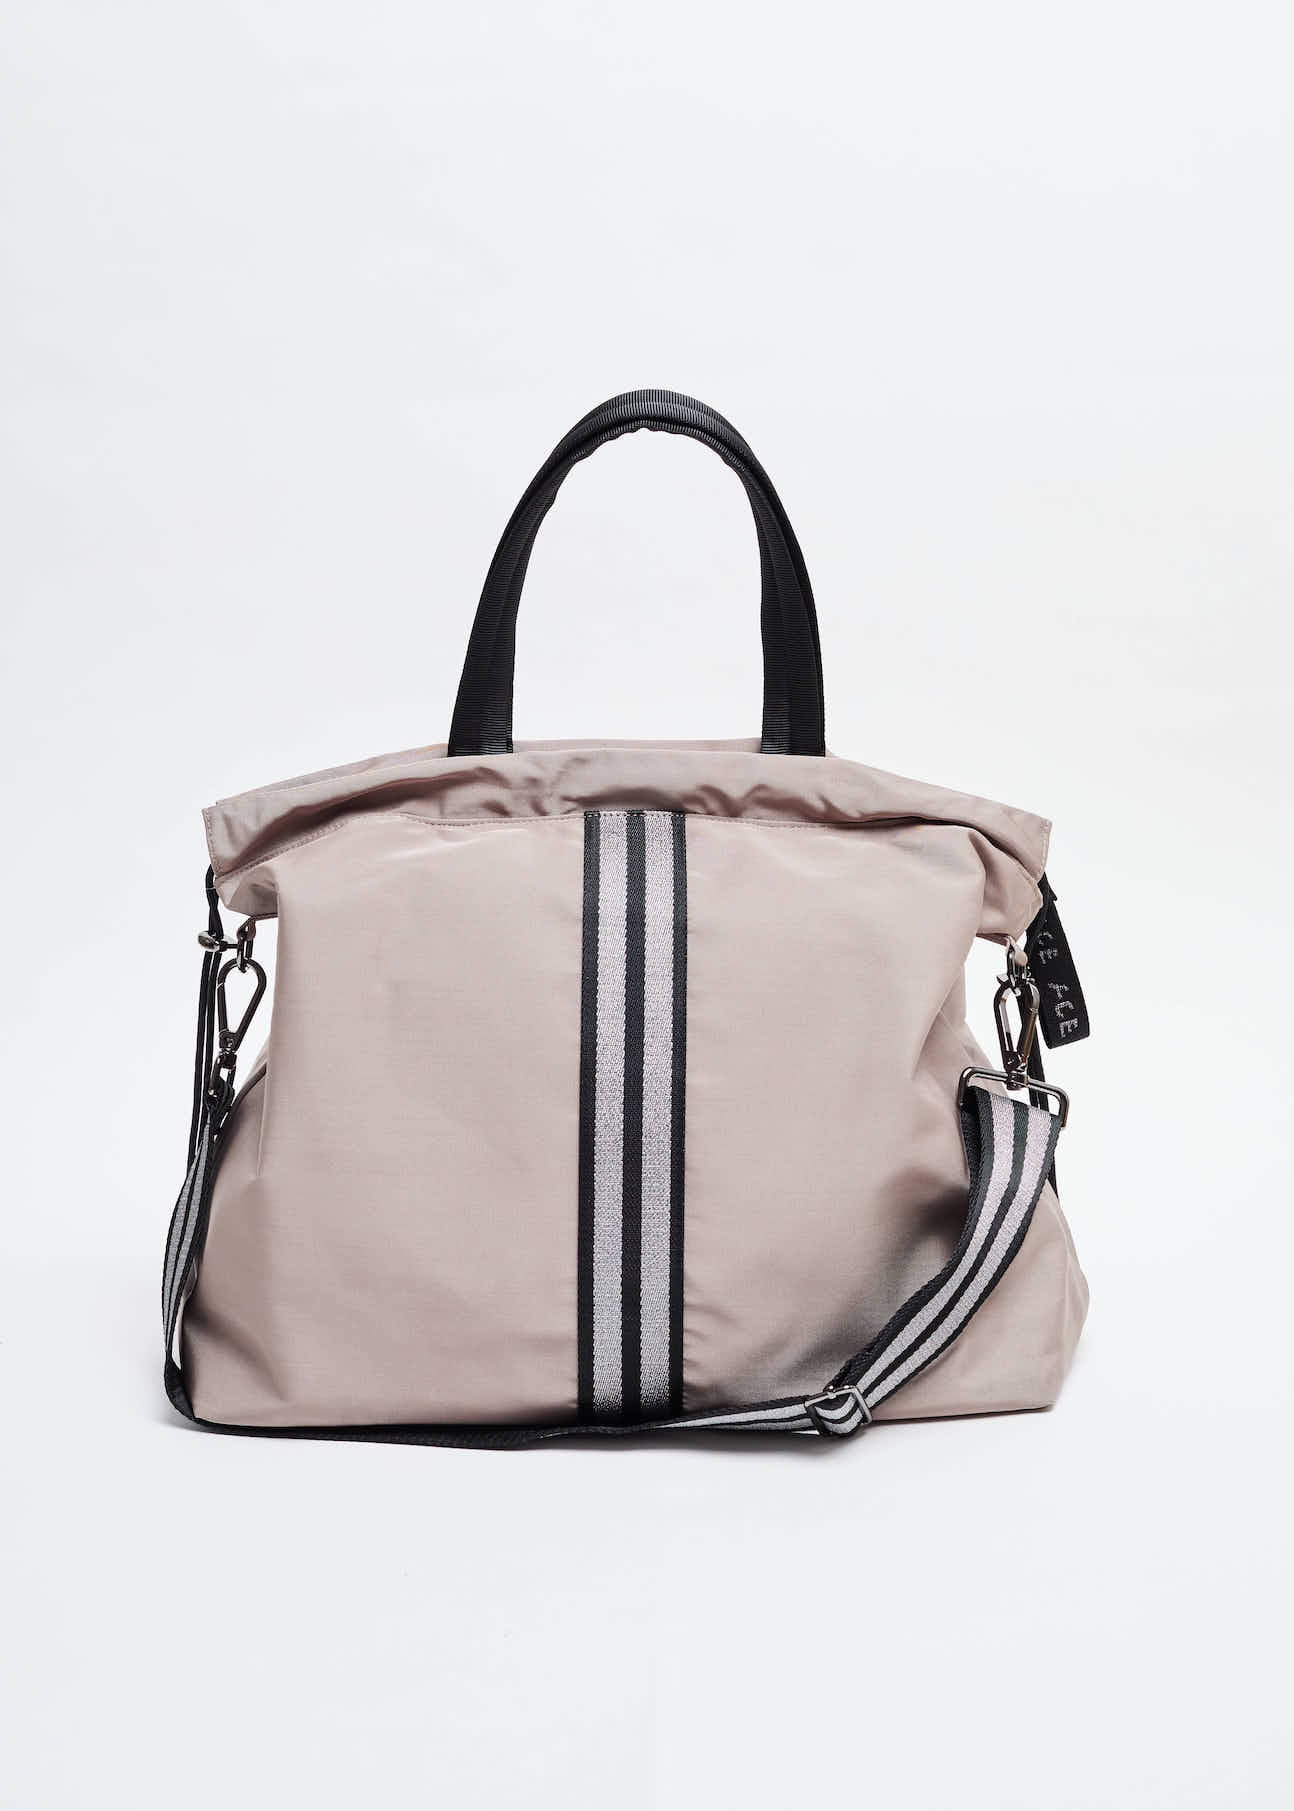 ACE Taupe All Day Tote Bag for gym work travel